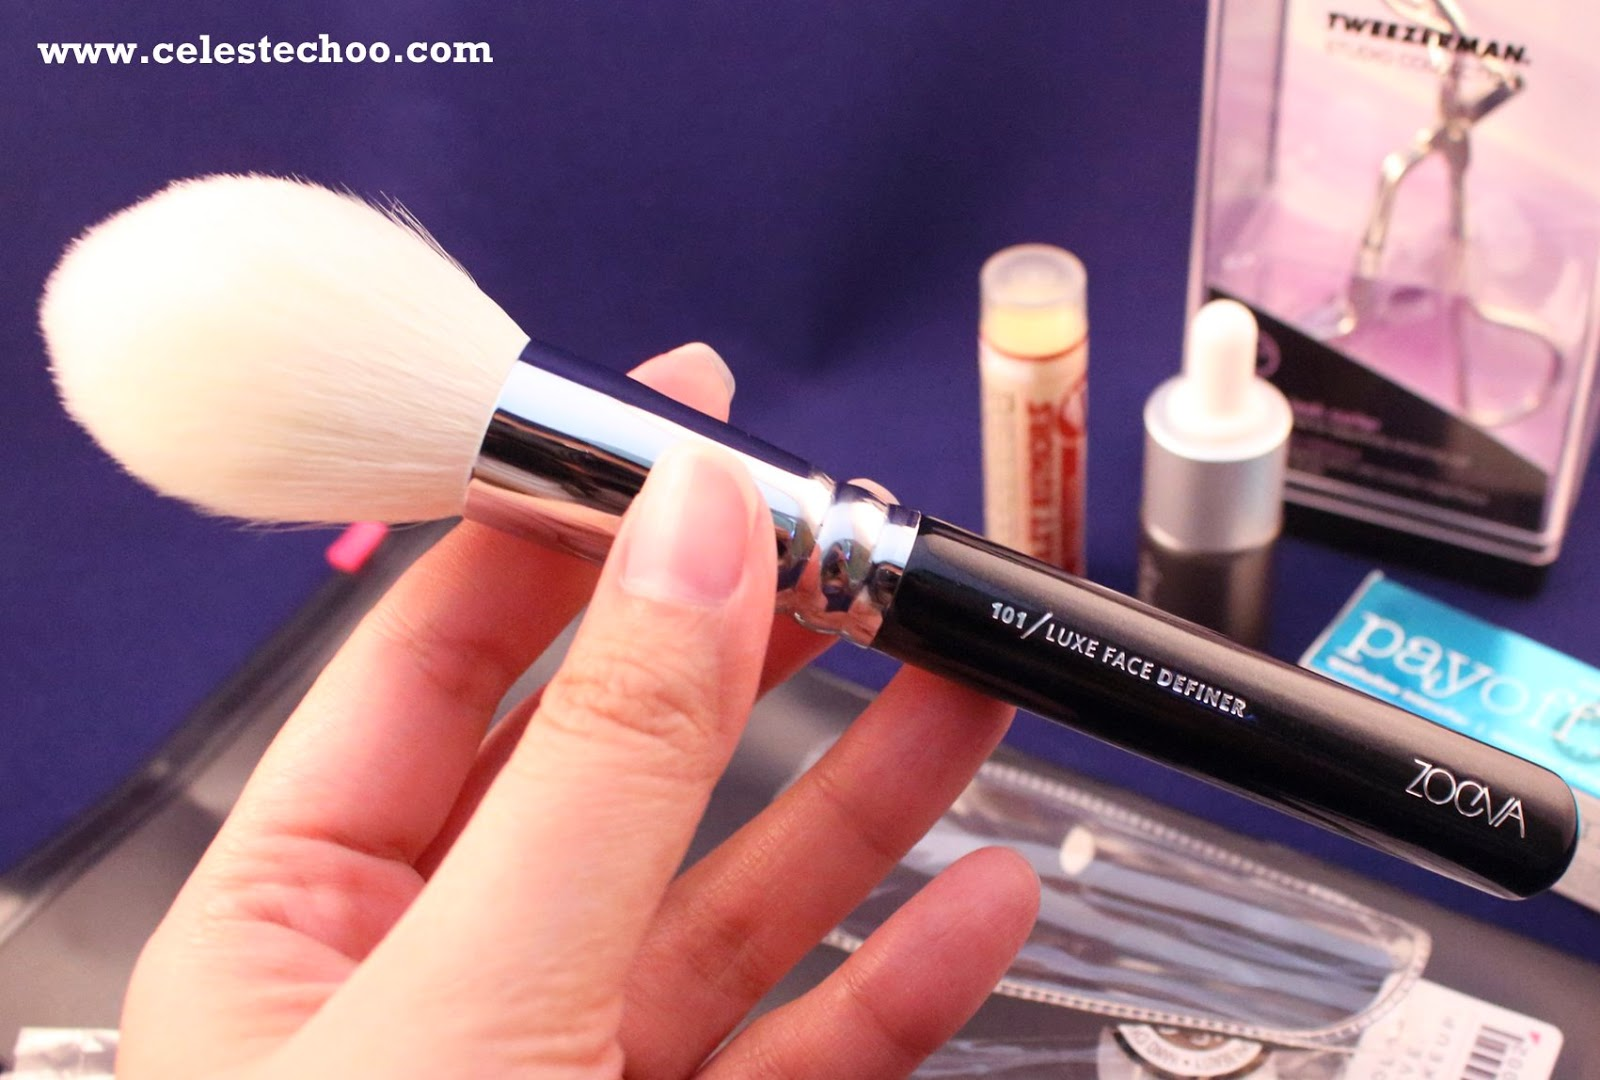 image-luxola-online-beauty-shopping-face-contouring-brush